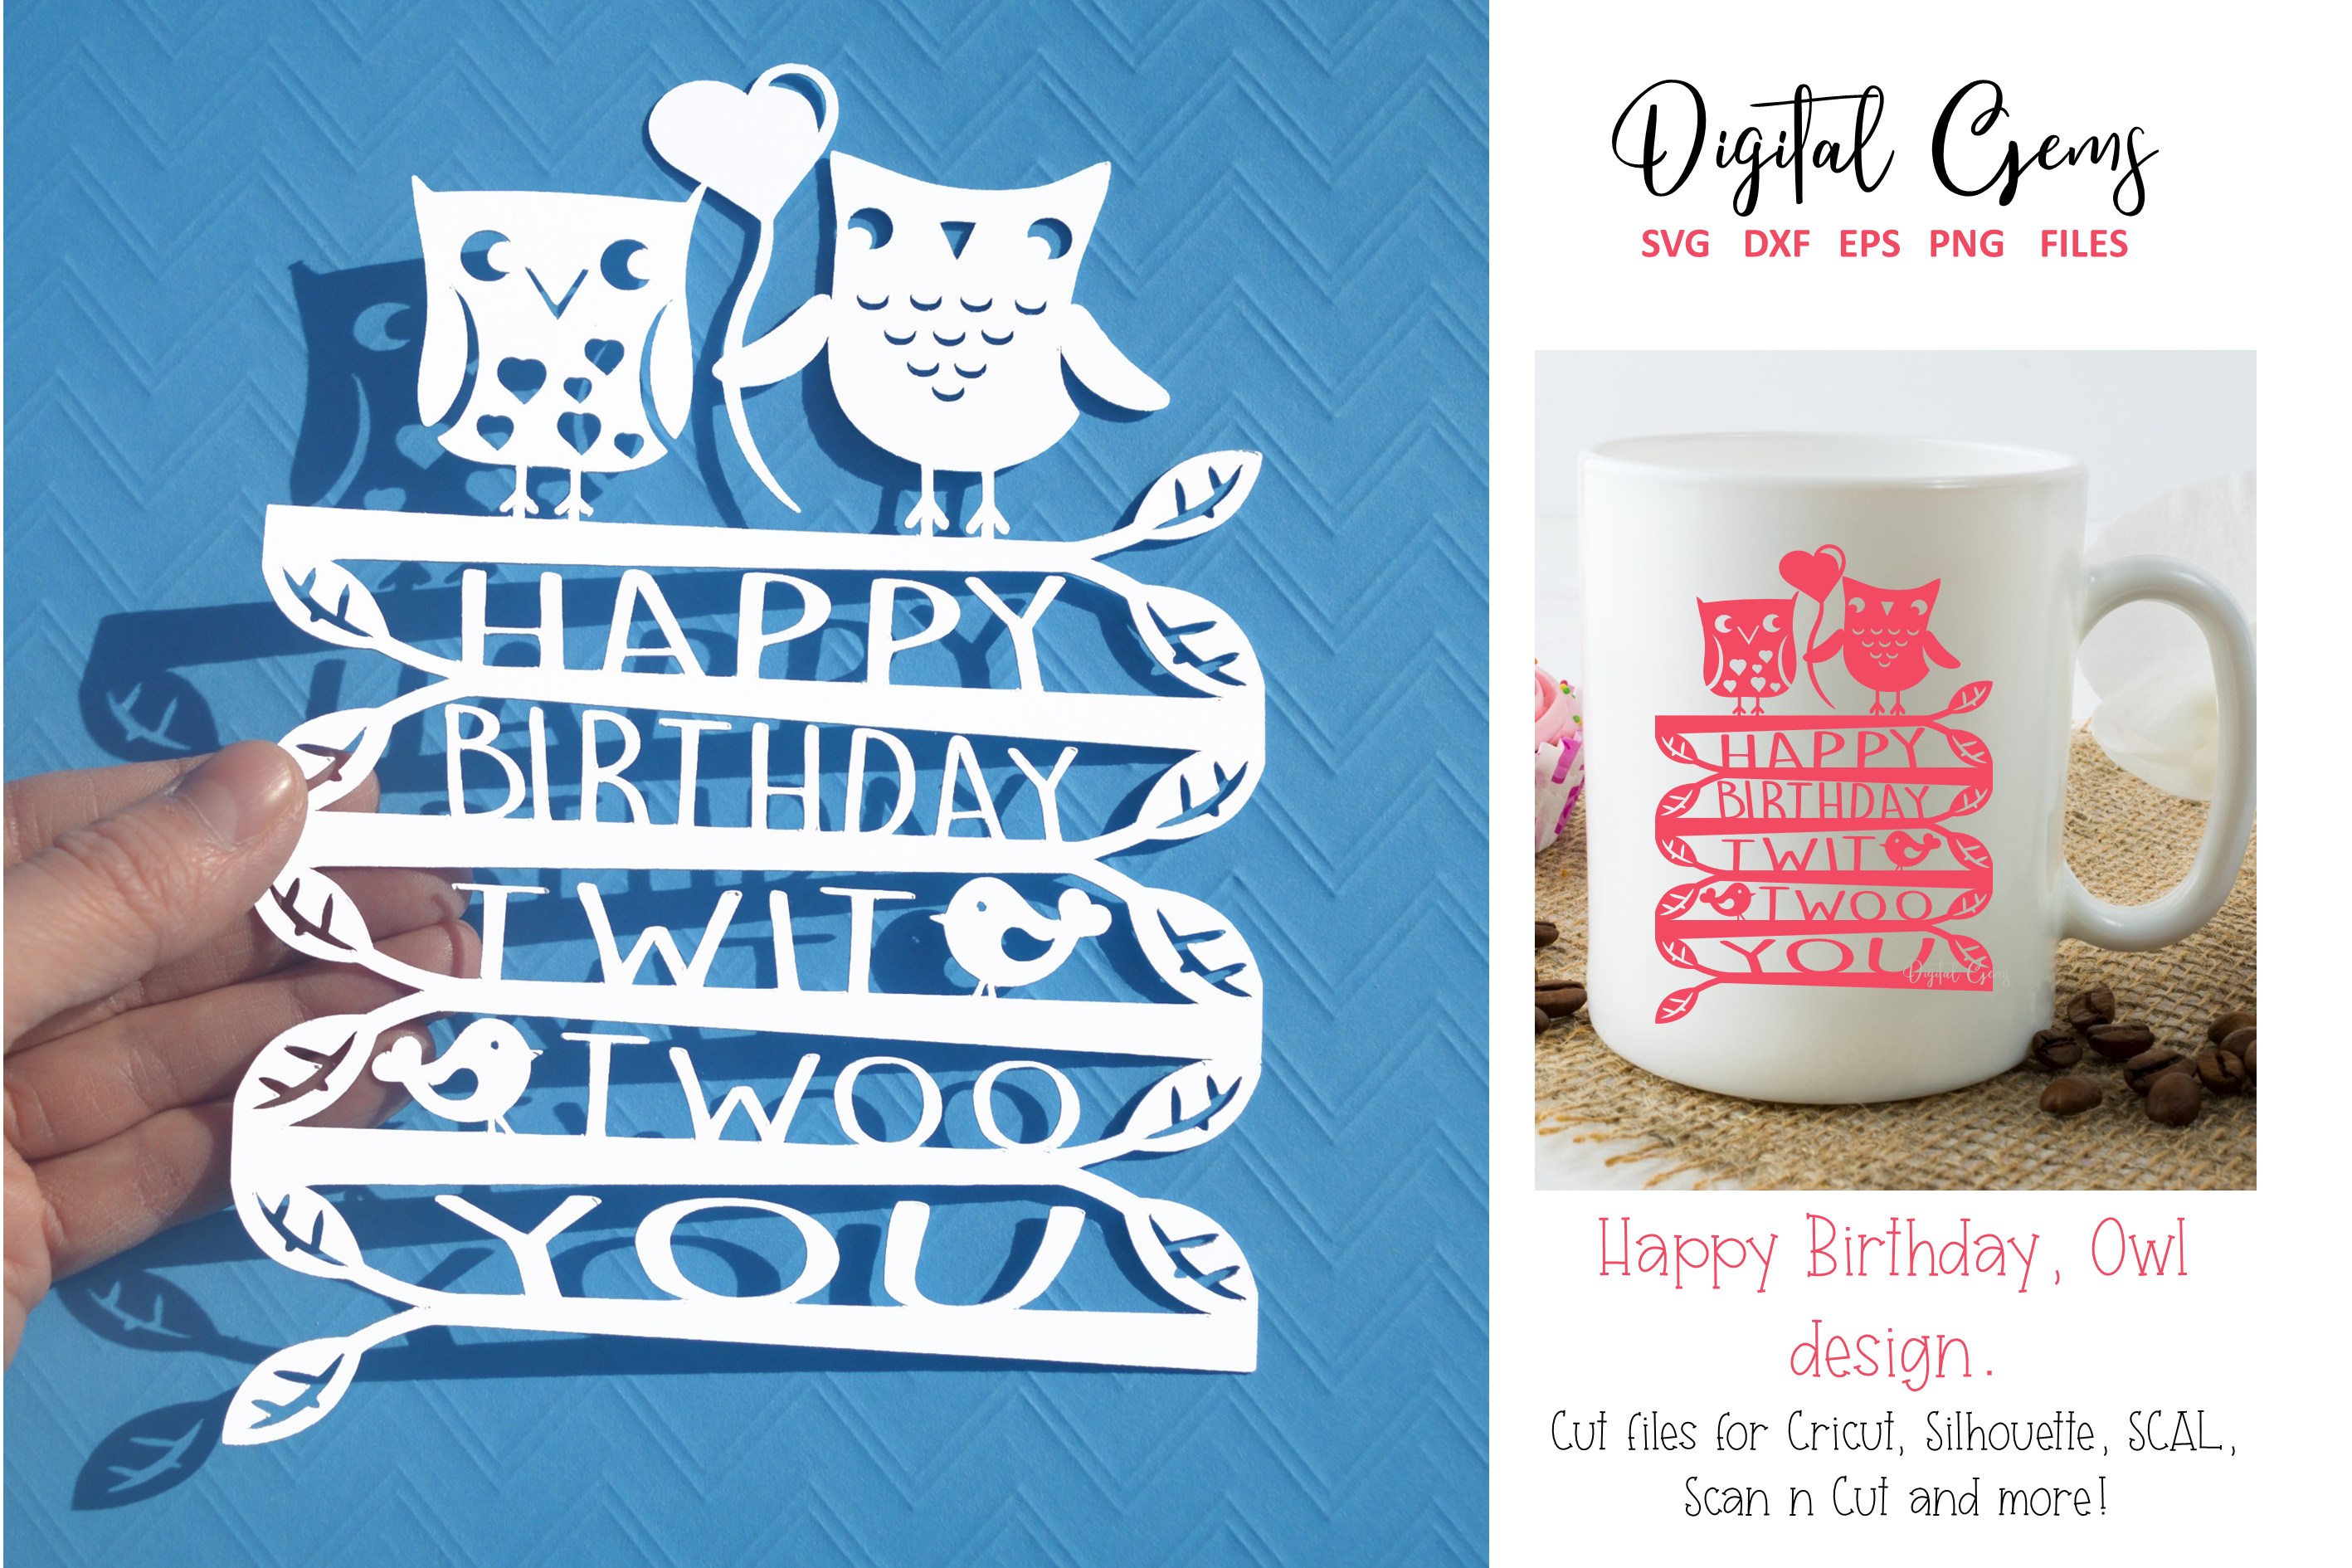 Download Free Happy Birthday Papercut Design Graphic By Digital Gems SVG Cut Files